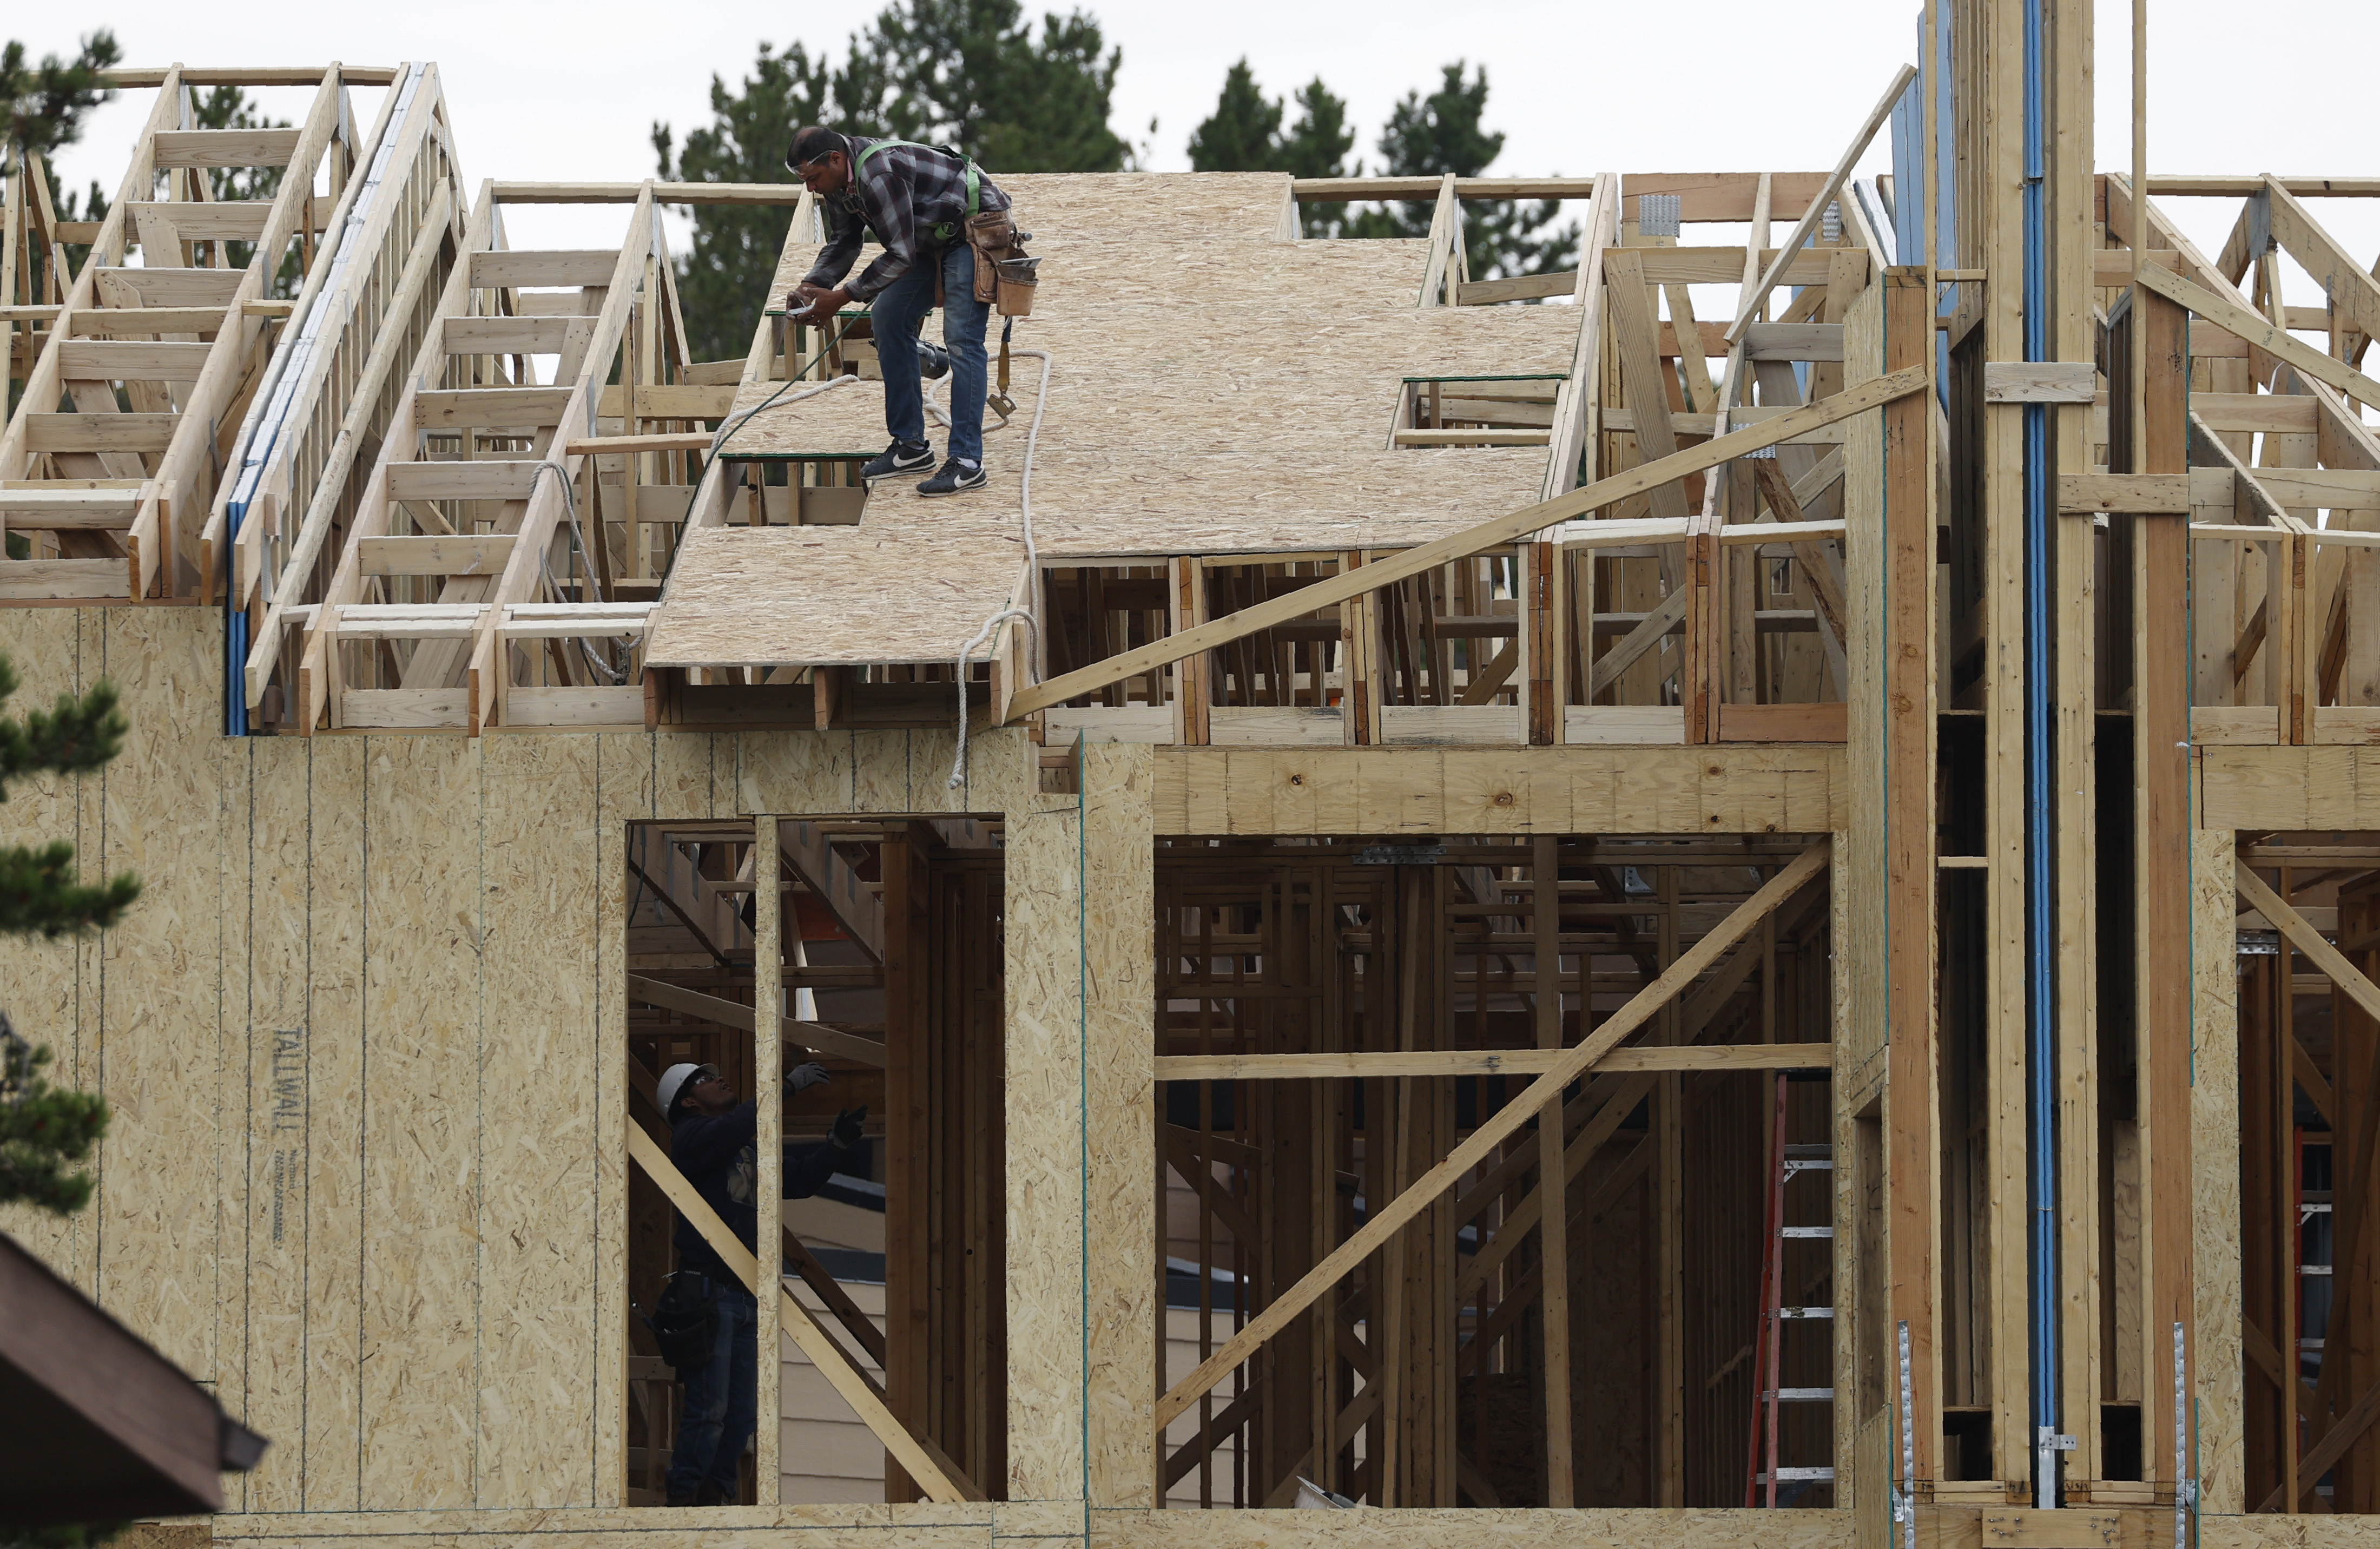 Workers toil on a multifamily dwelling in Winter Park, Colo., on Tuesday, Aug. 4, 2020.